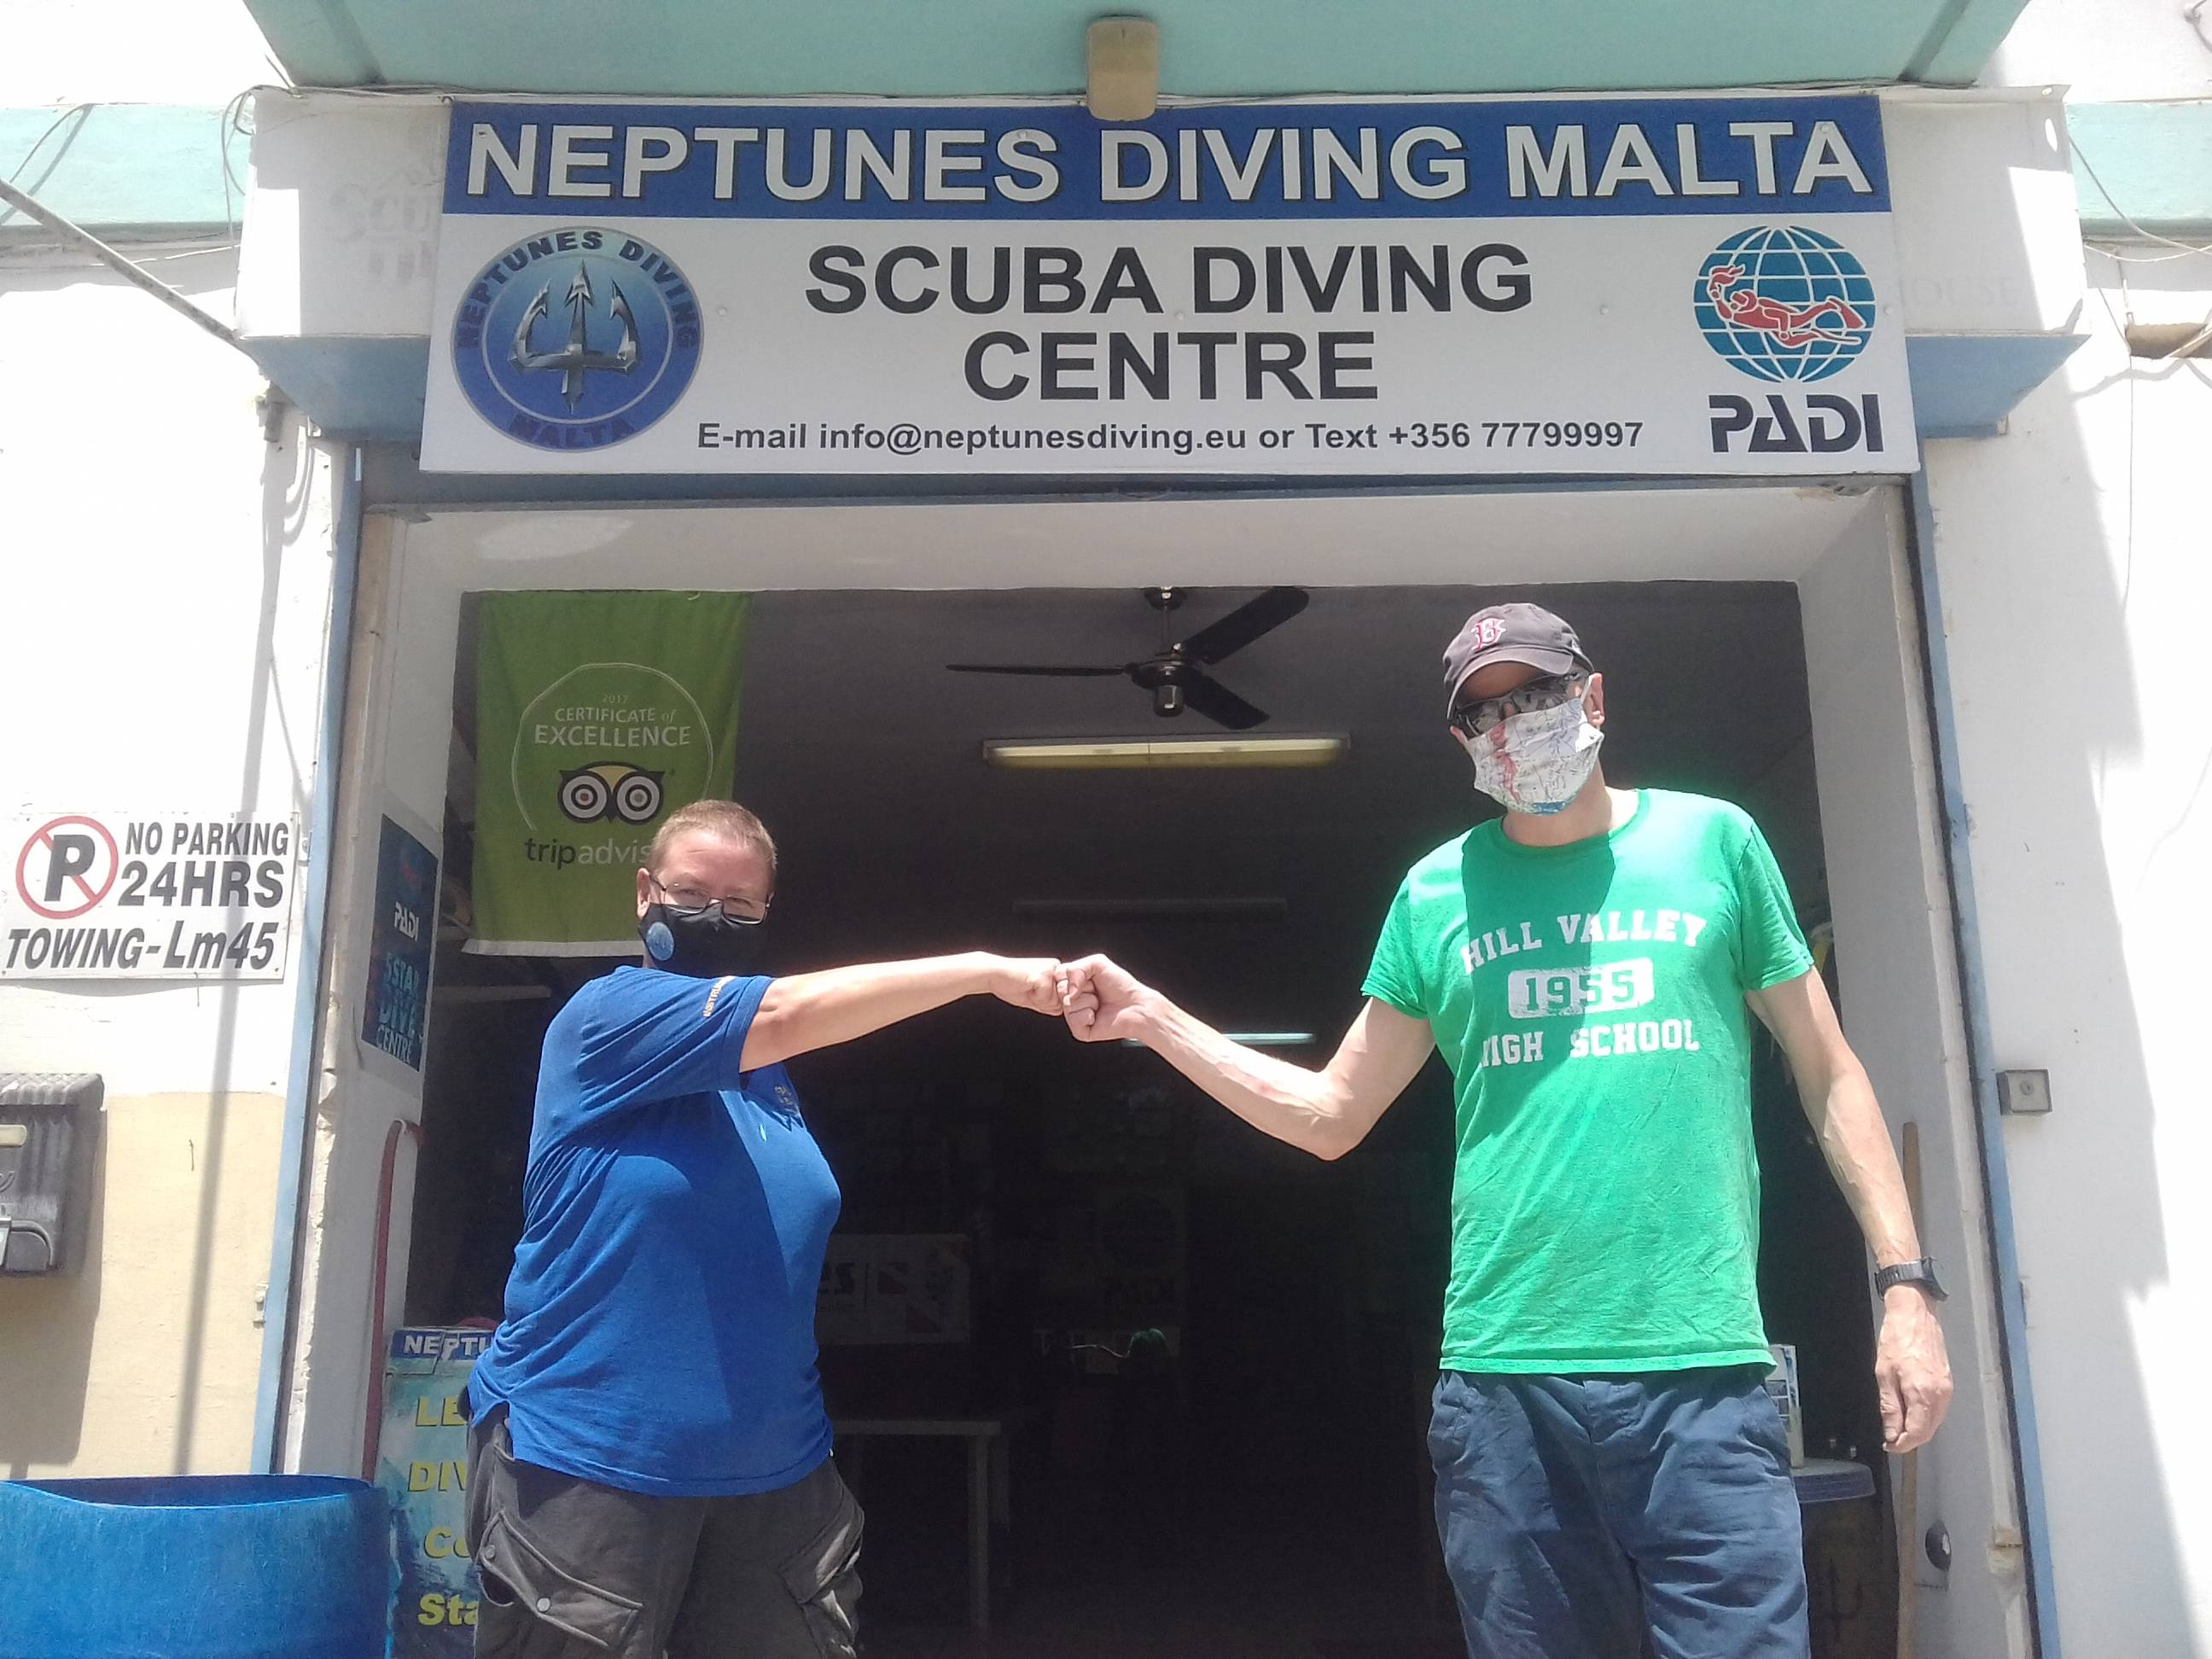 PADI Advanced Open Water Diver with Neptunes Diving Malta